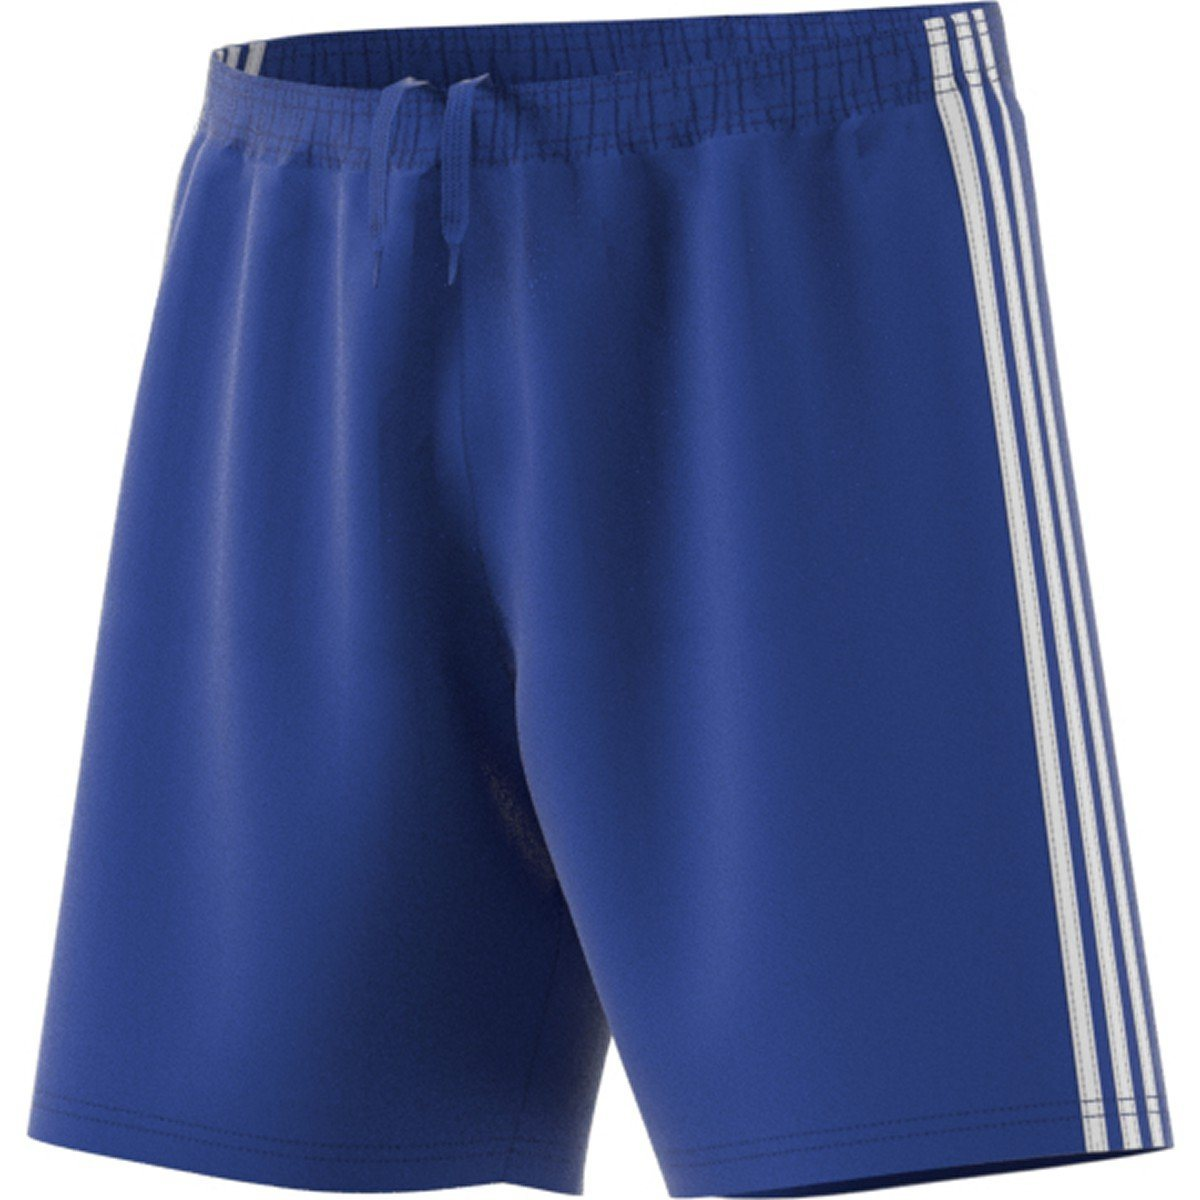 adidas Men's Condivo 18 Shorts | CF0723 Soccer Apparel adidas Adult XS bold blue/white